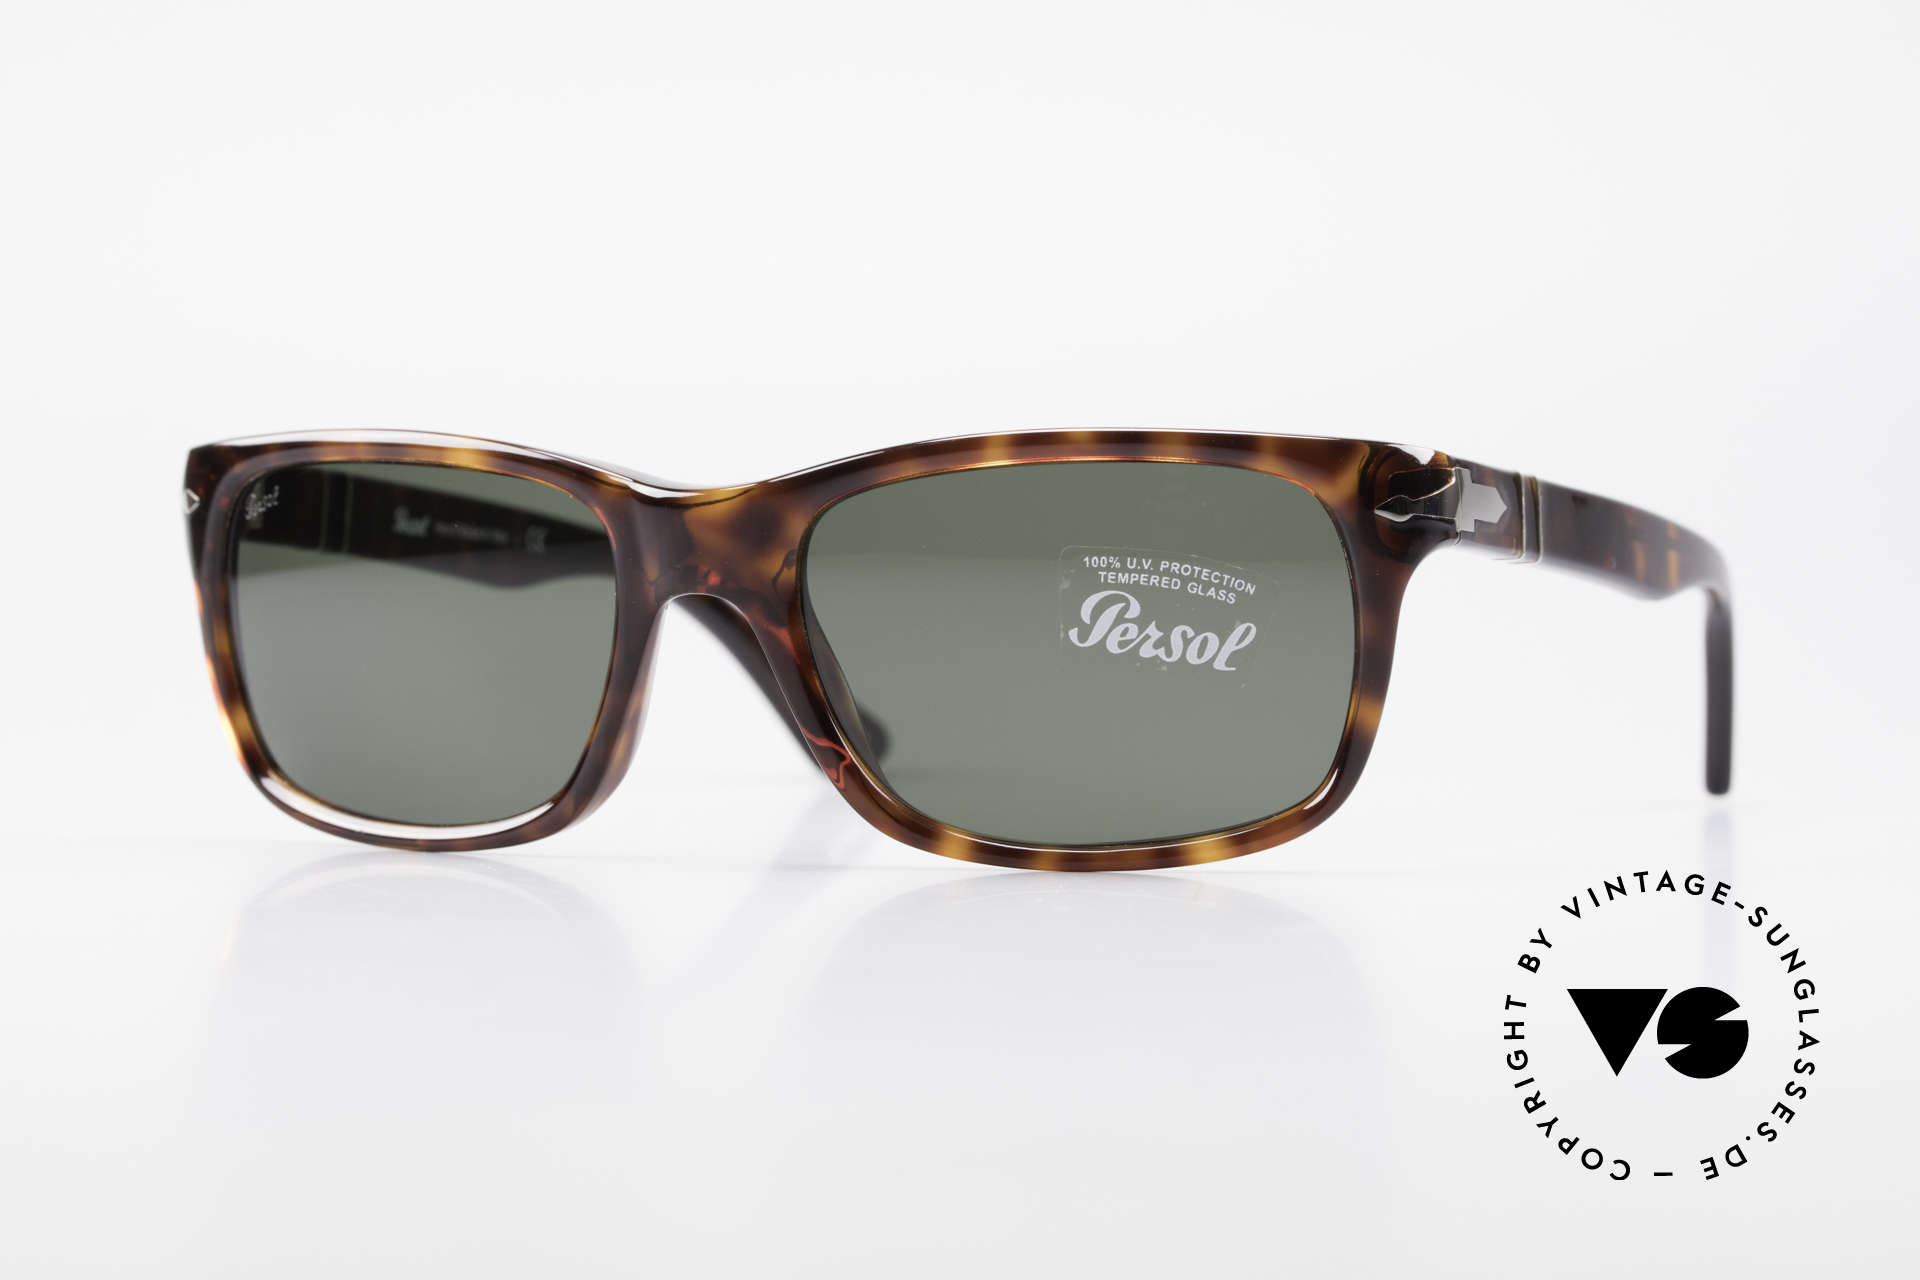 Persol 3048 Timeless Designer Sunglasses, Persol 3048: current designer sunglasses by PERSOL, Made for Men and Women